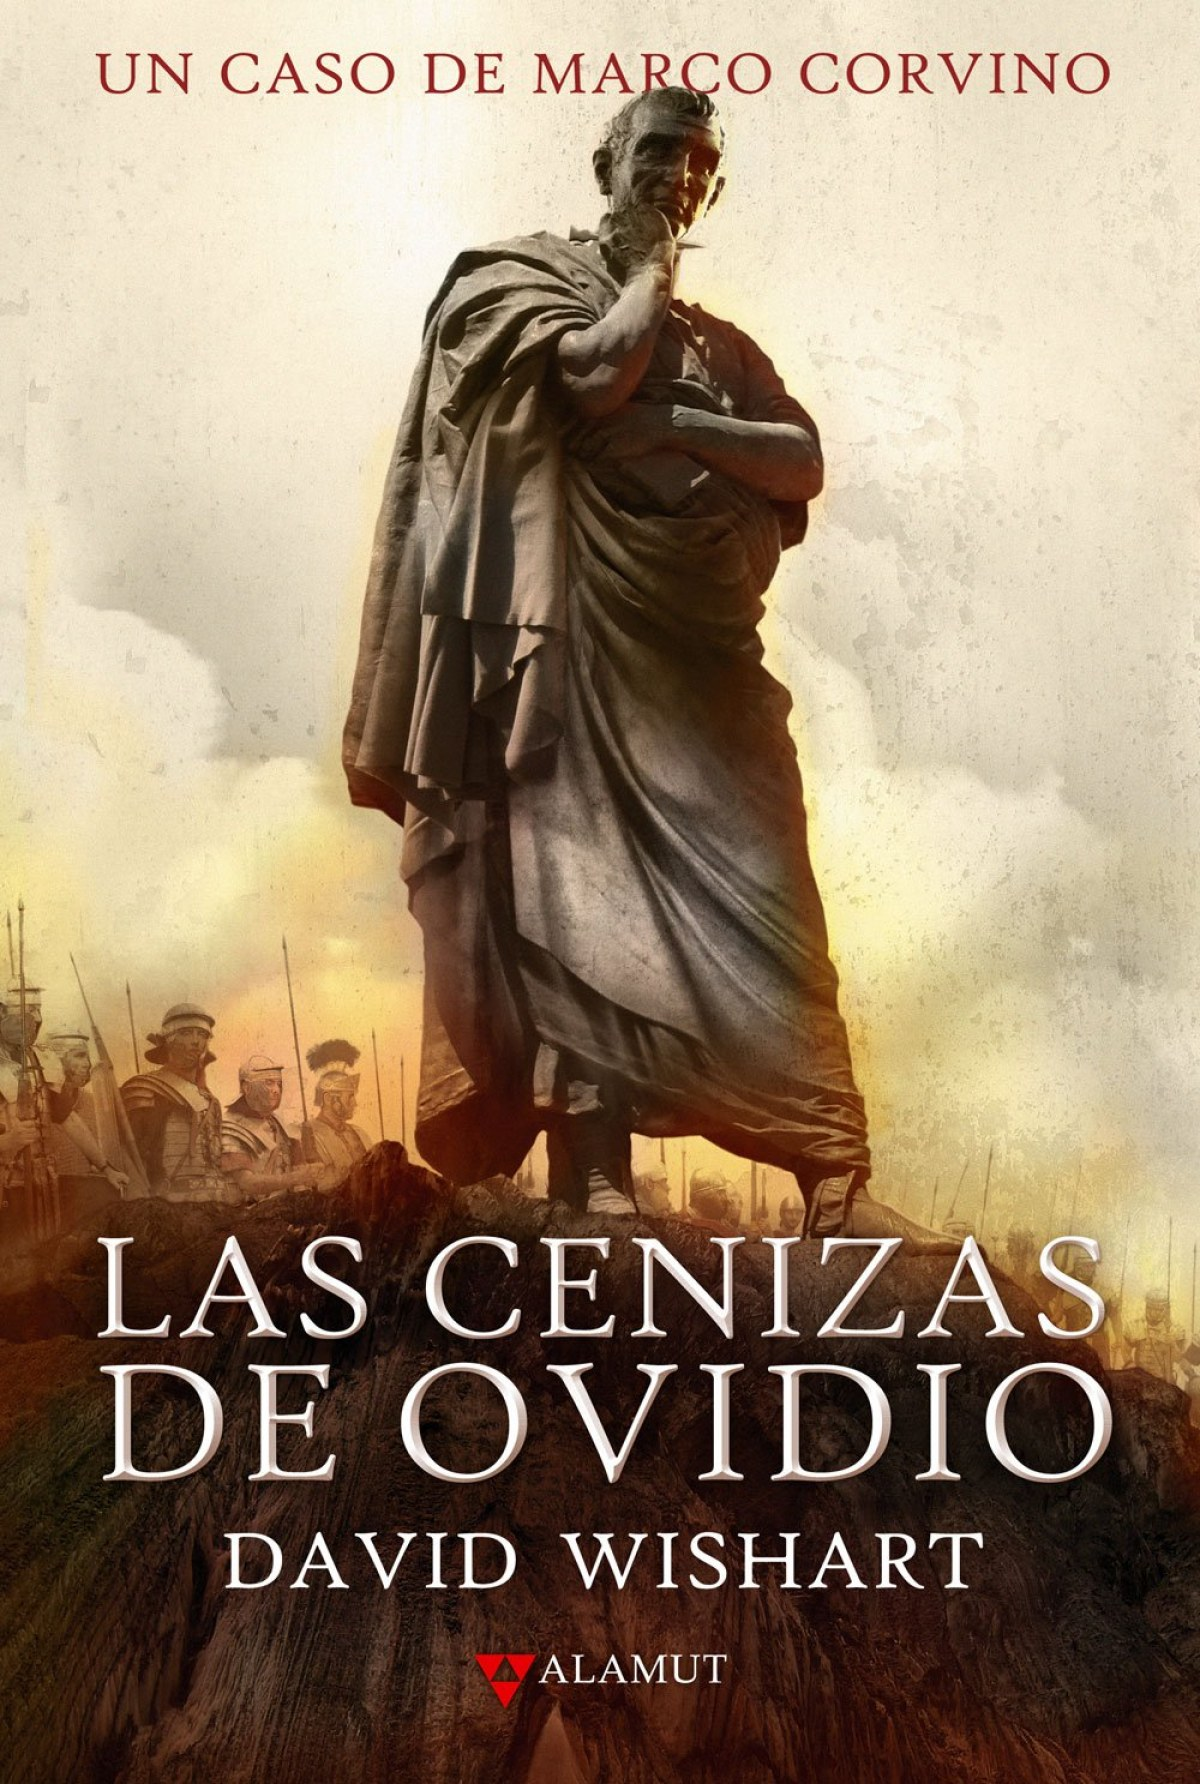 Las cenizas de Ovidio - Wishart, David